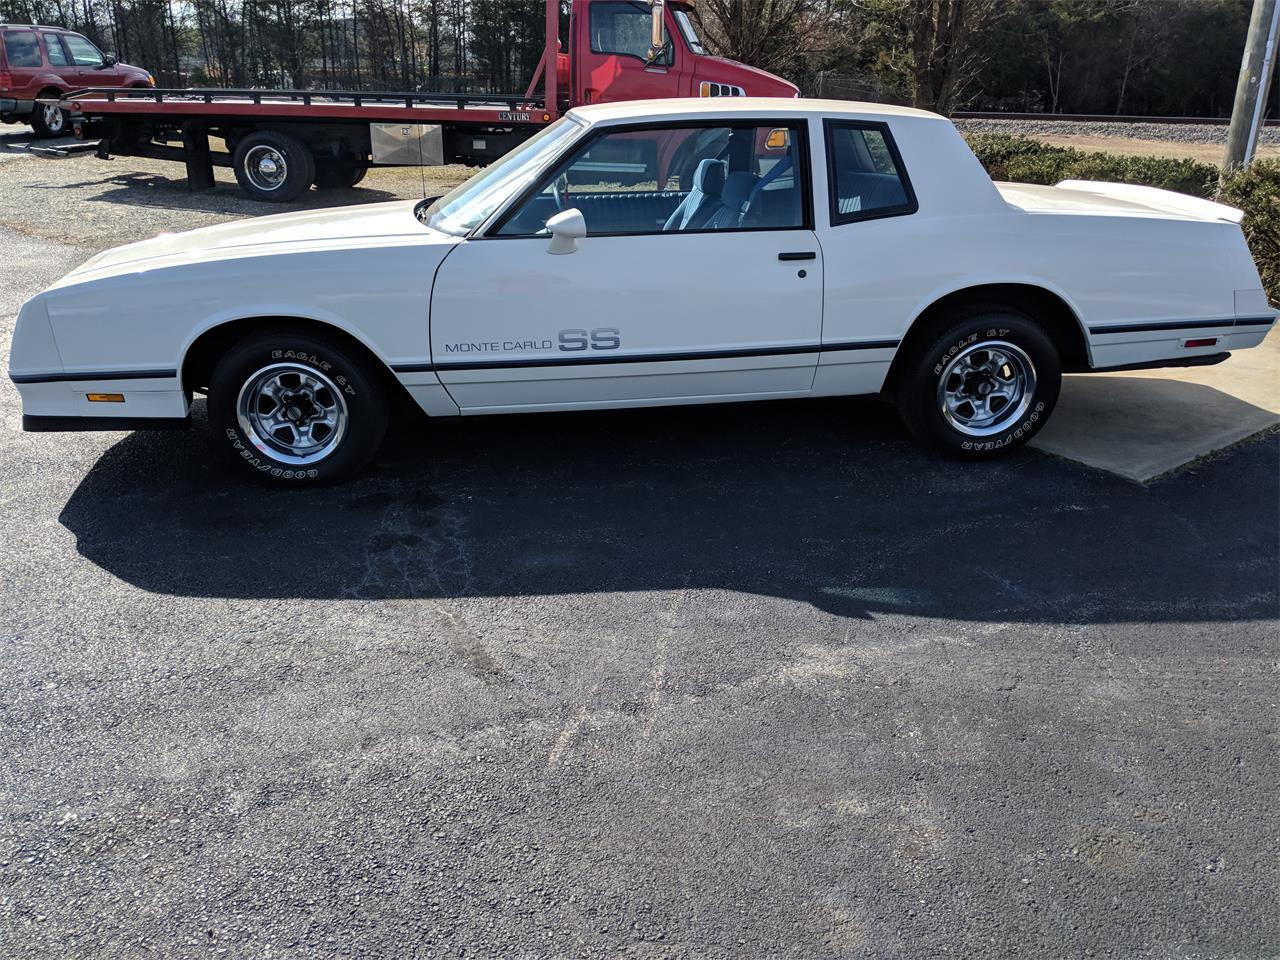 1984 chevrolet monte carlo ss for sale classiccars com cc 1065826 1984 chevrolet monte carlo ss for sale